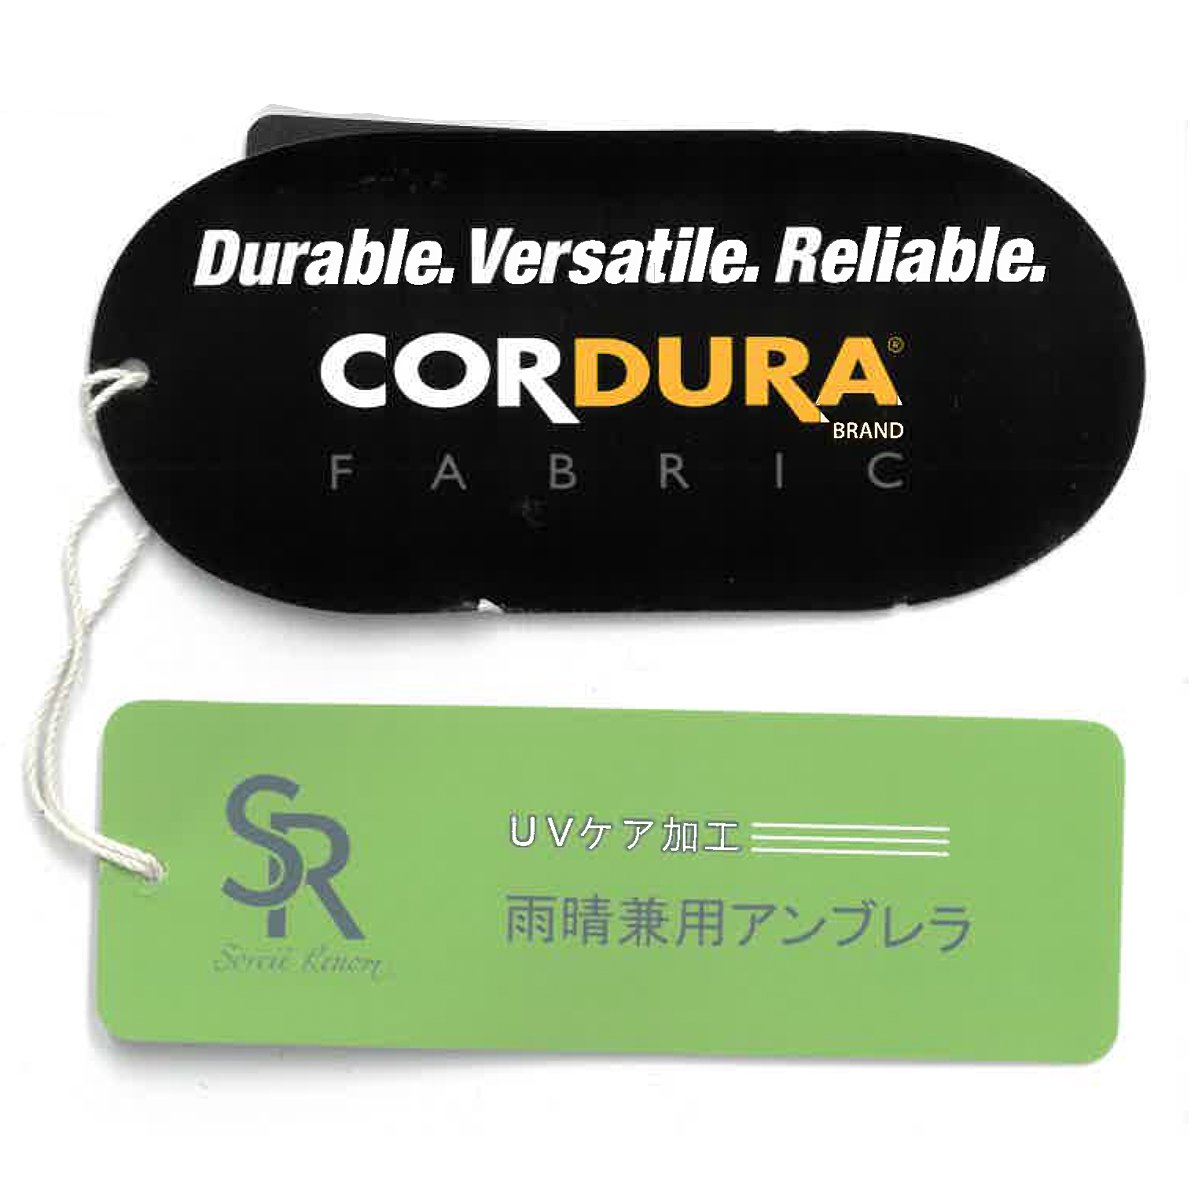 608K CORDURA FOLDING UMBRELLA 詳細画像9